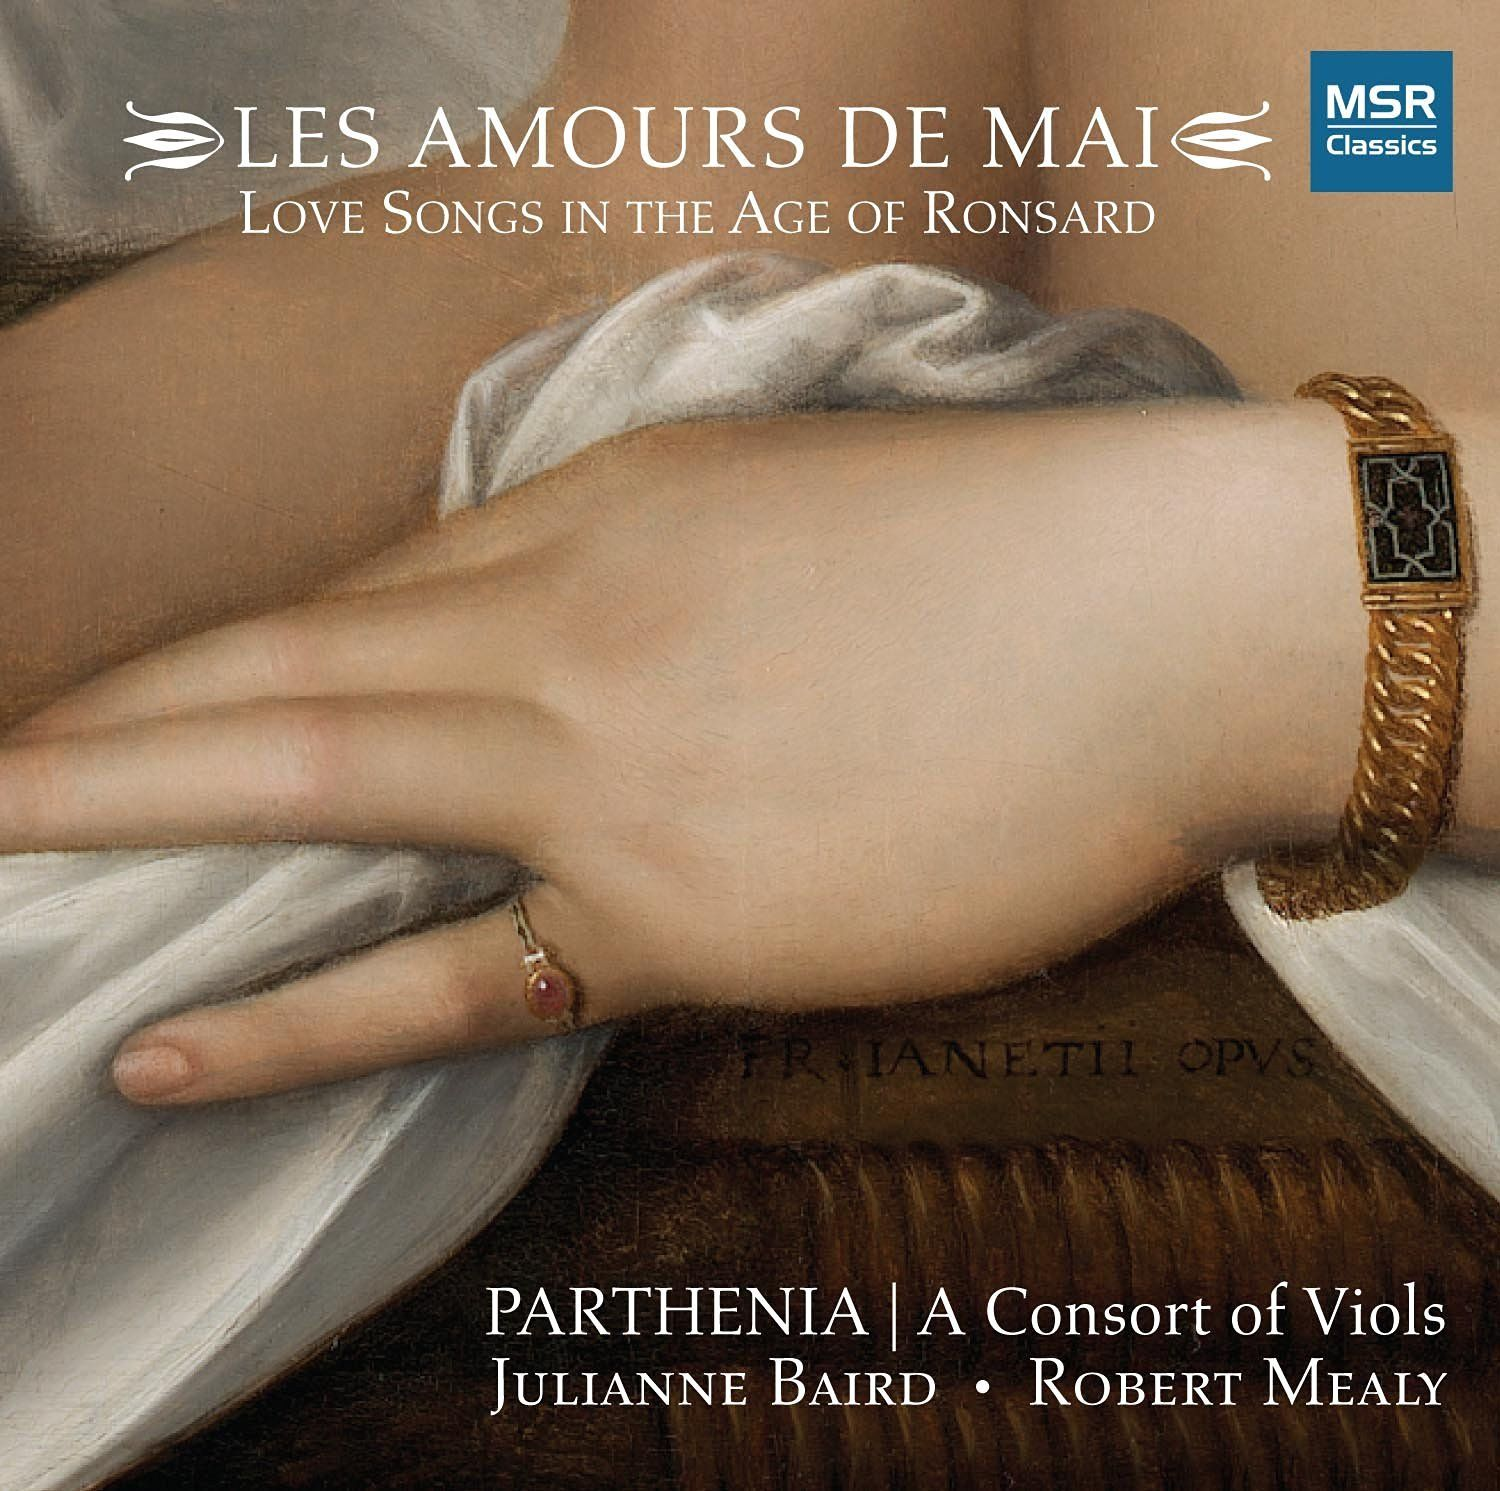 Parthenia - LES AMOURS DE MAI - Love Songs in the Age of Ronsard